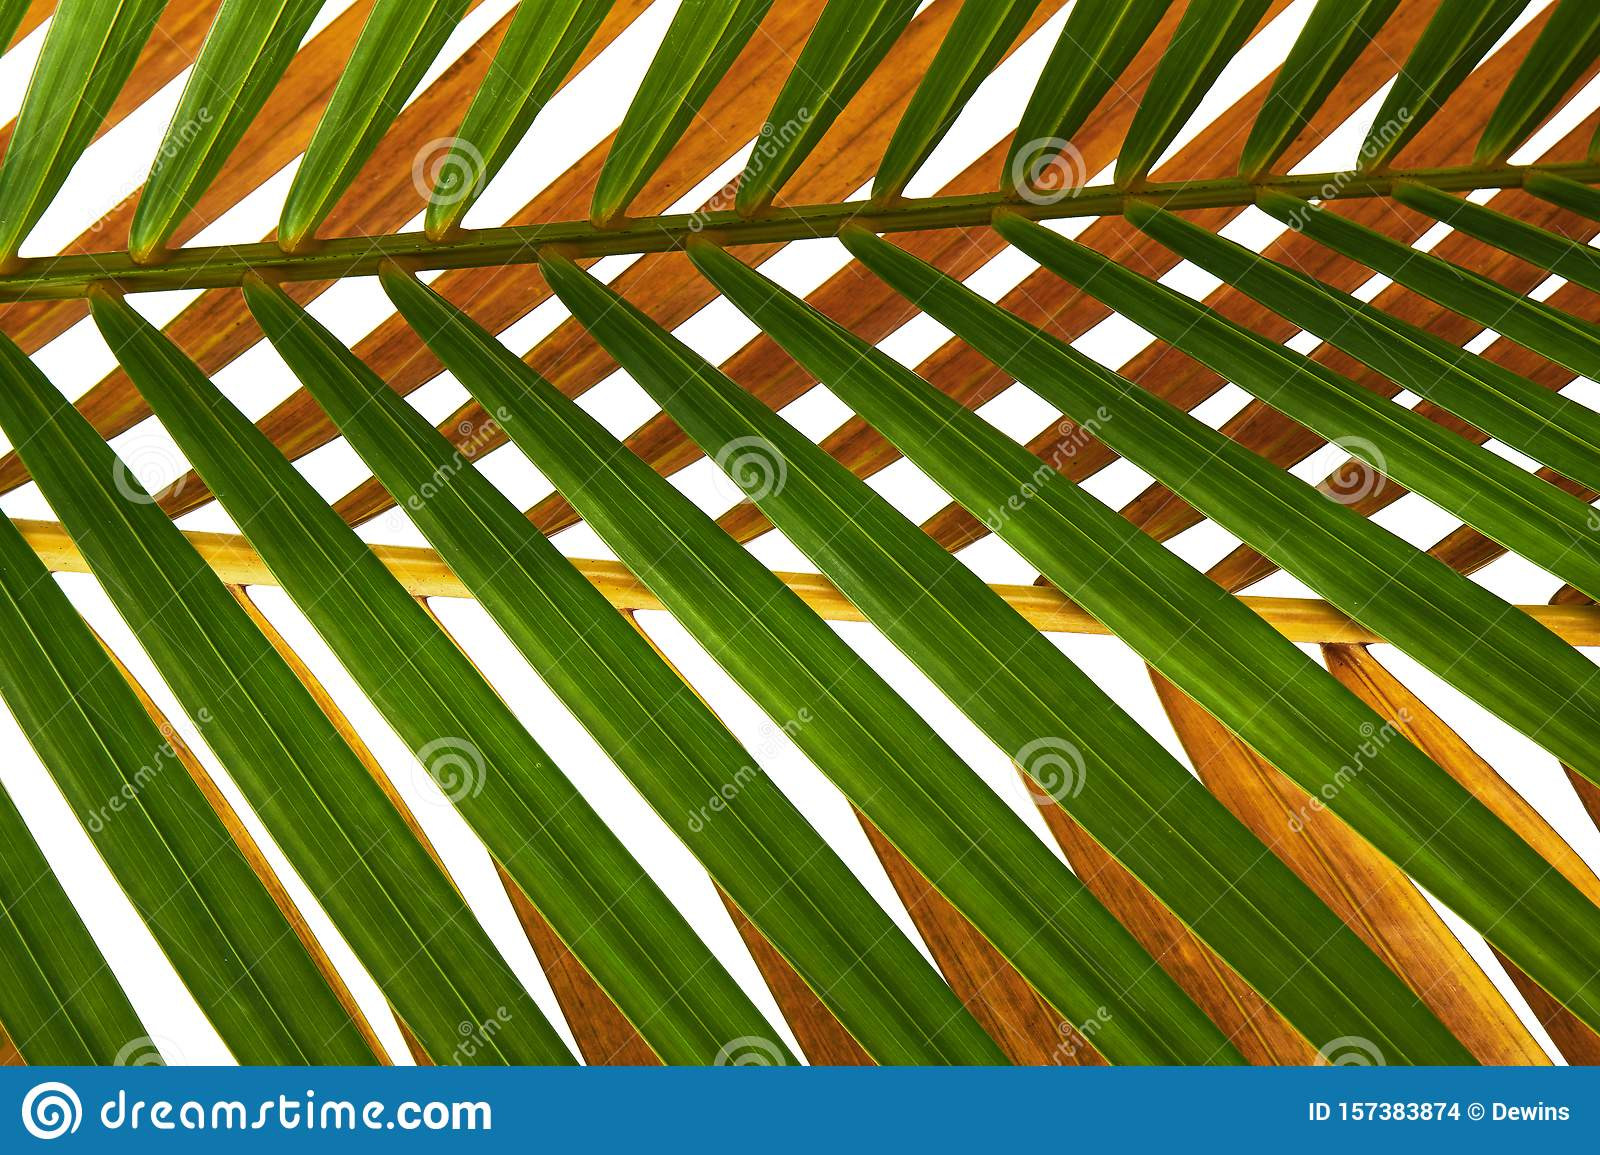 Yellow Palm Leaves Dypsis Lutescens Or Golden Cane Palm Areca Palm Leaves Tropical Foliage Isolated On White Background With C Stock Photo Image Of Beach Botanic 157383874